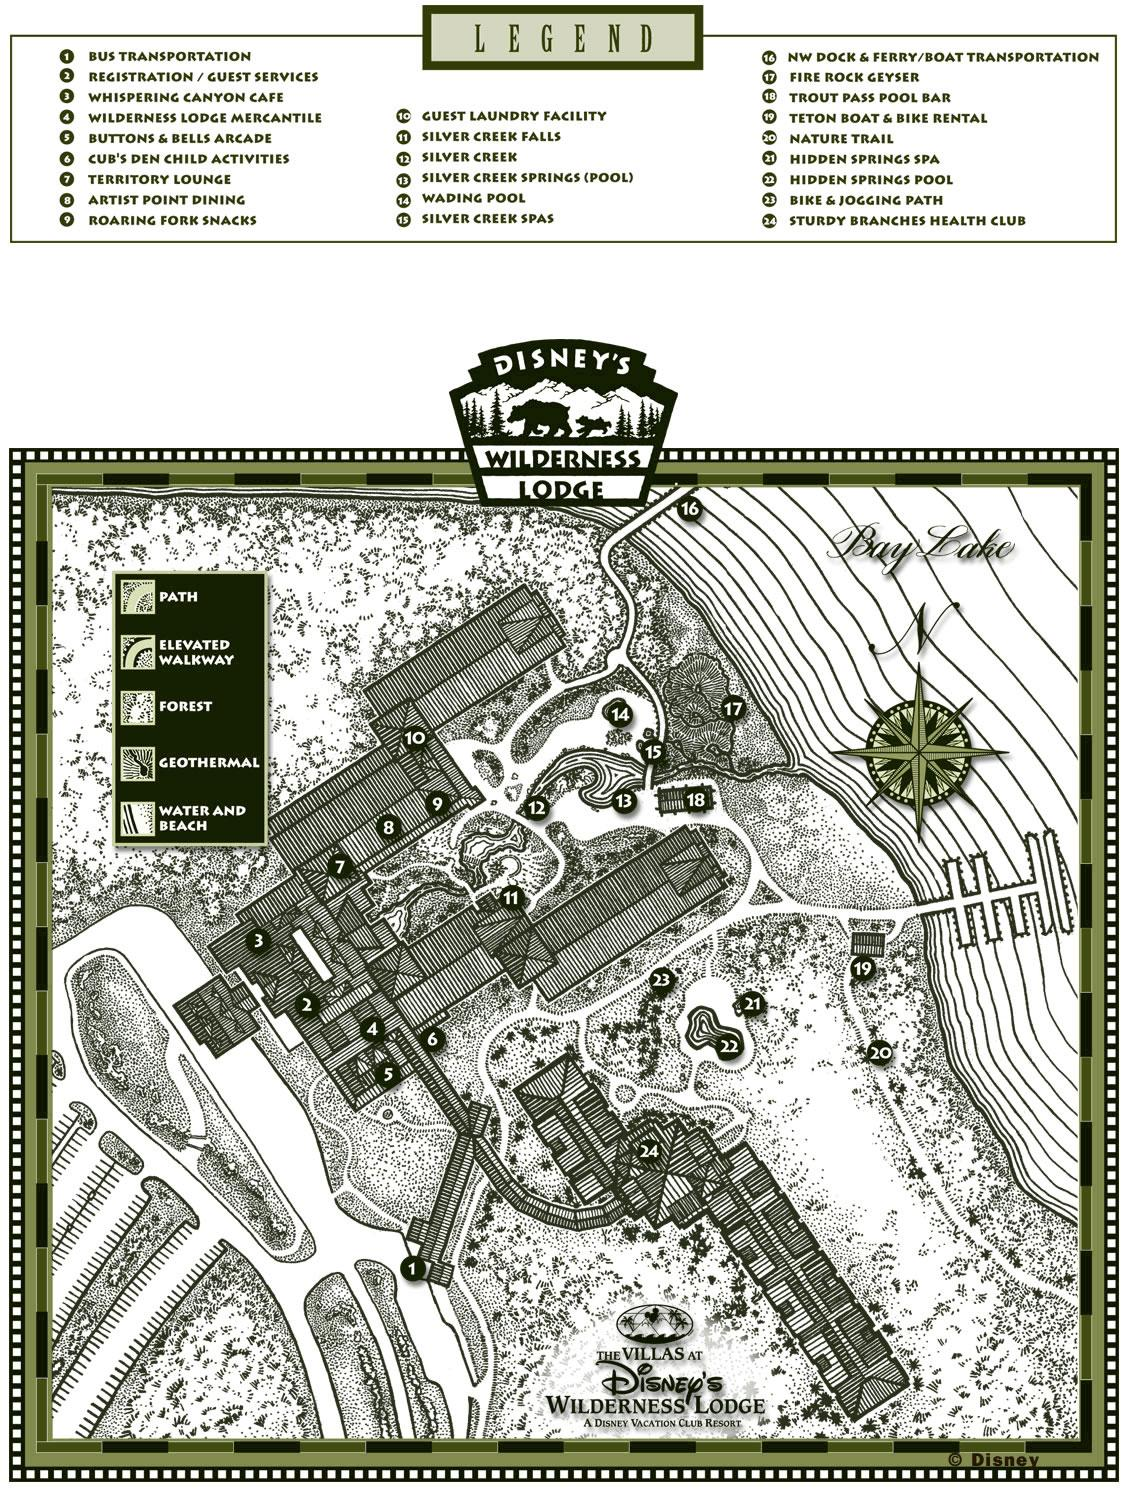 the villas at wilderness lodge resort map1